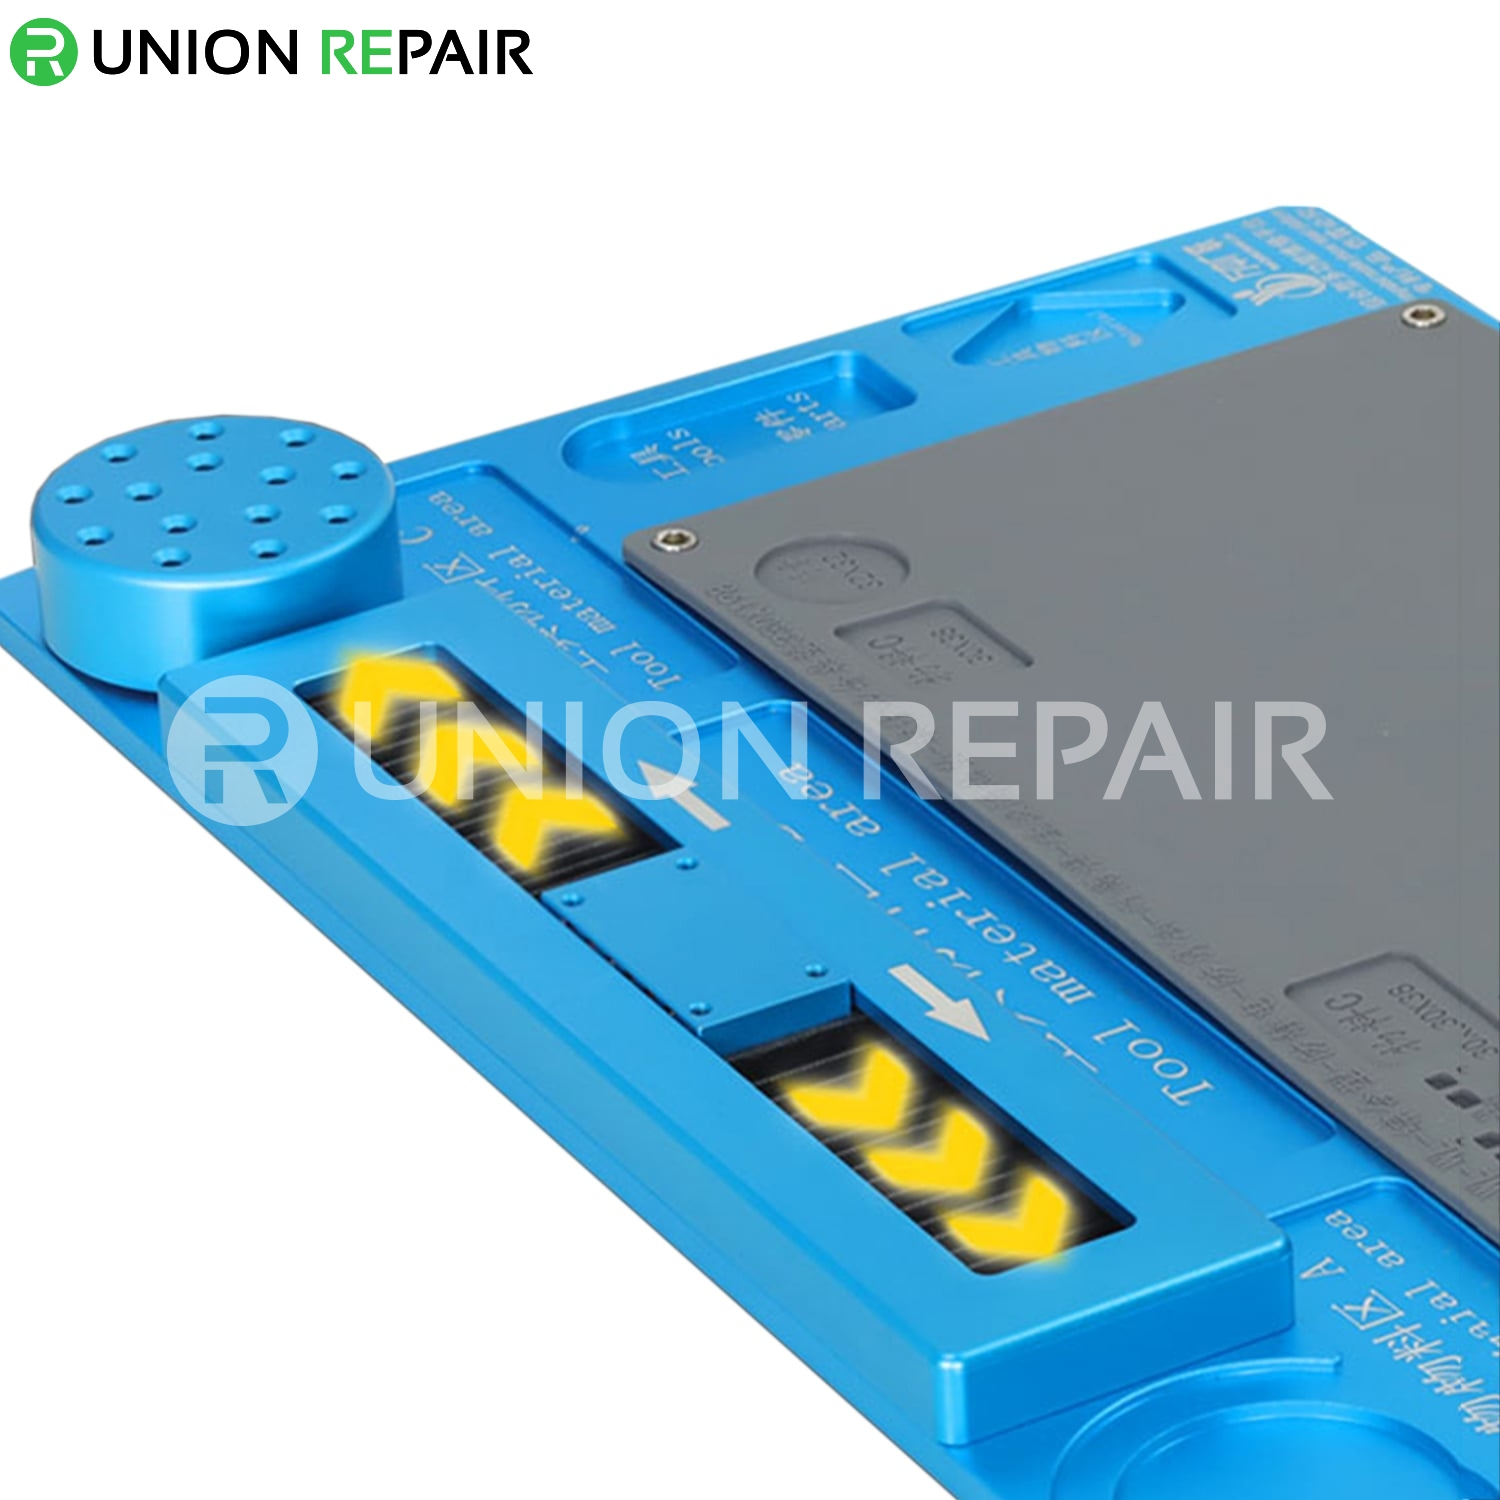 WL Aluminium Alloy Comprehensive Universal Sliding Maintenance Platform 468mm x 318mm